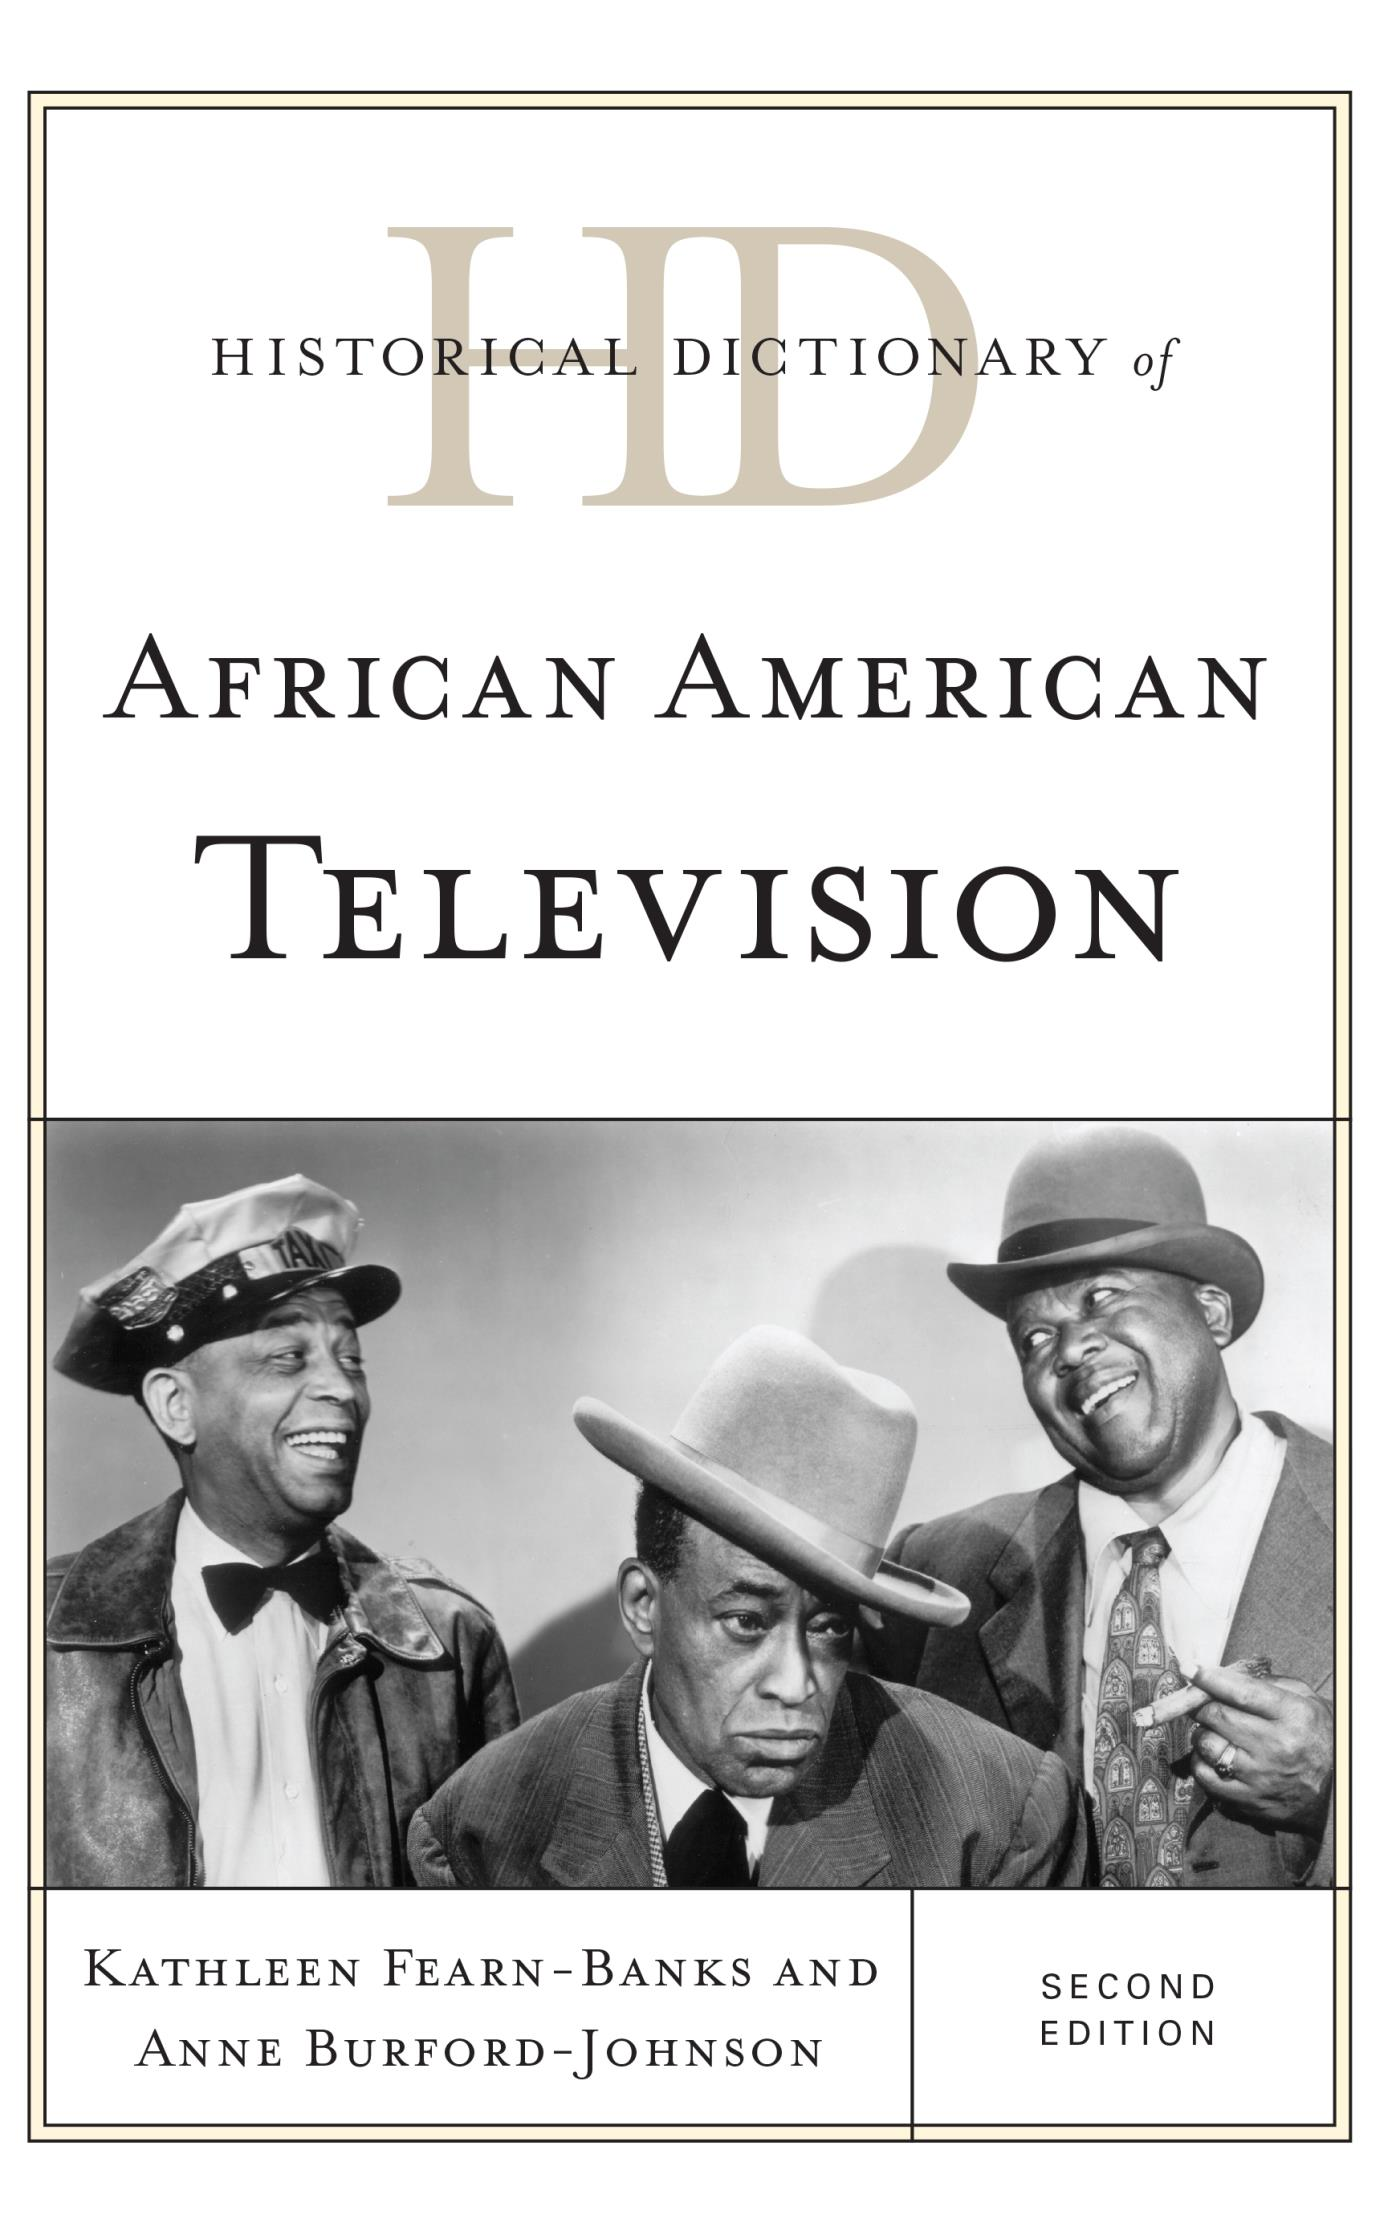 Historical Dictionary of African American Television